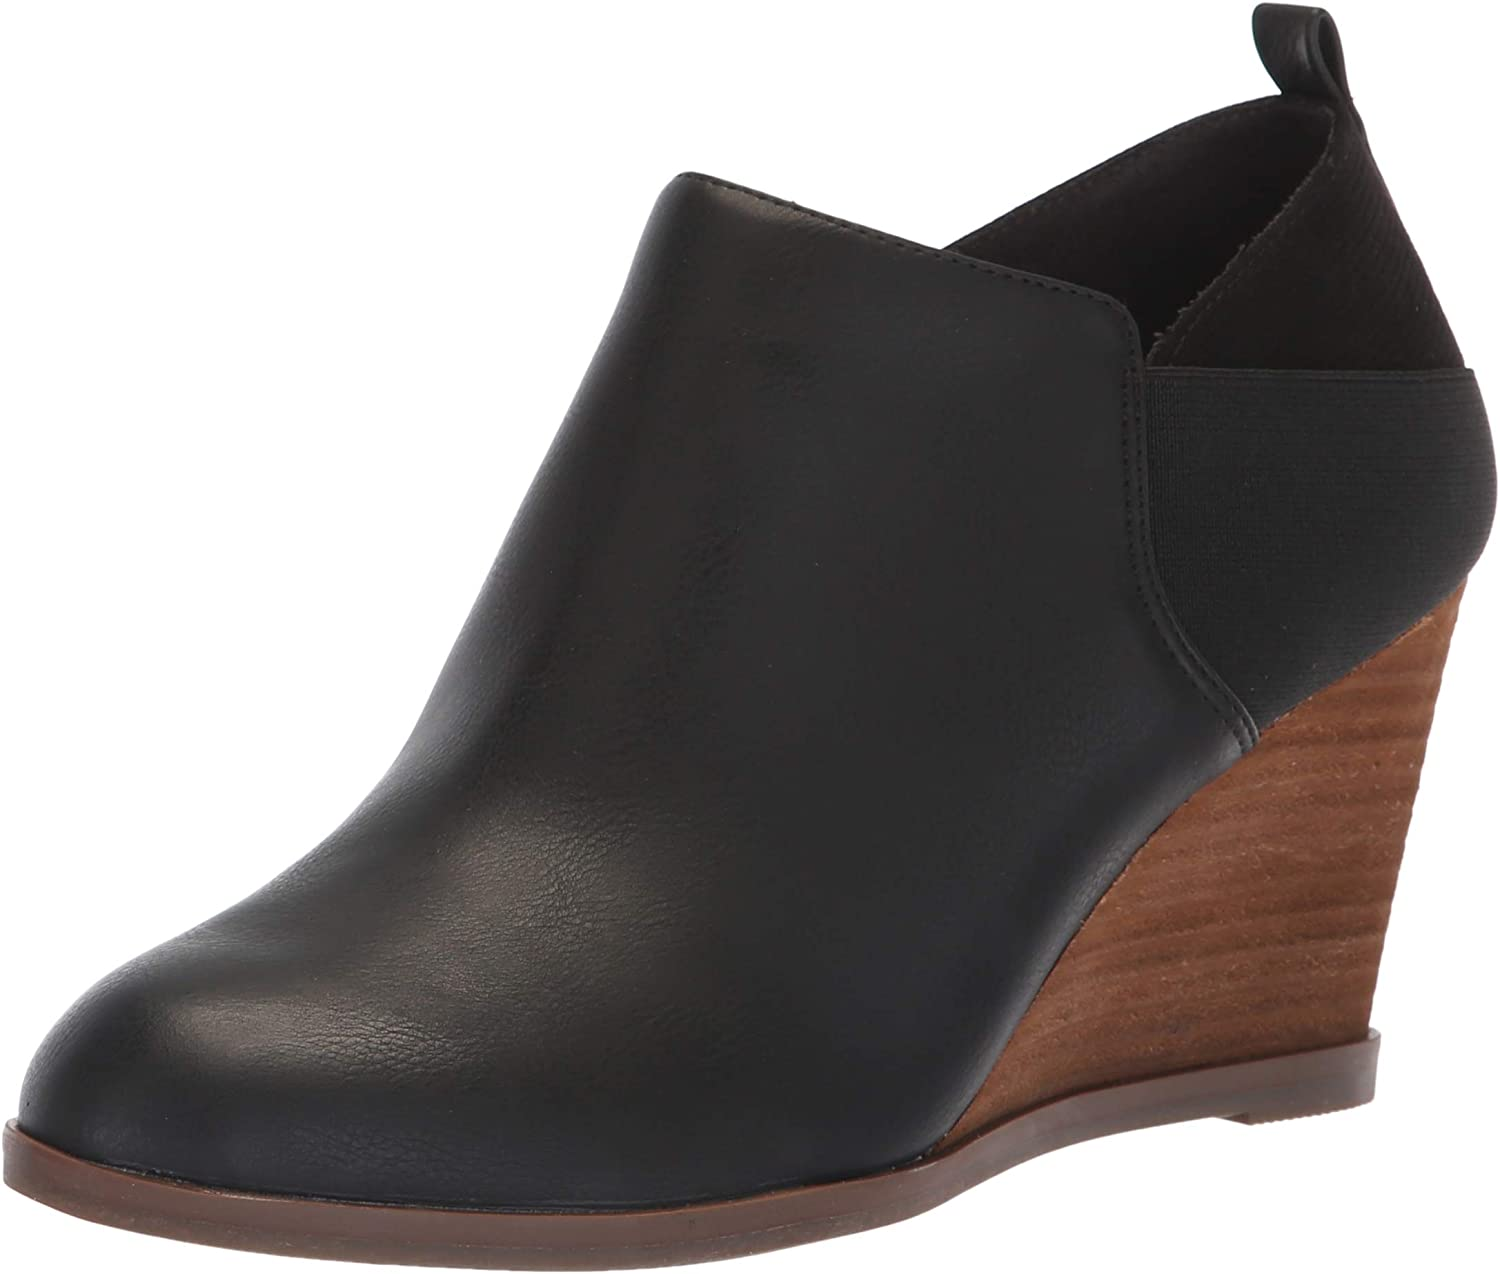 Dr. Scholl's shoes Women's Parler Ankle Boot, Black Smooth, 7 M US